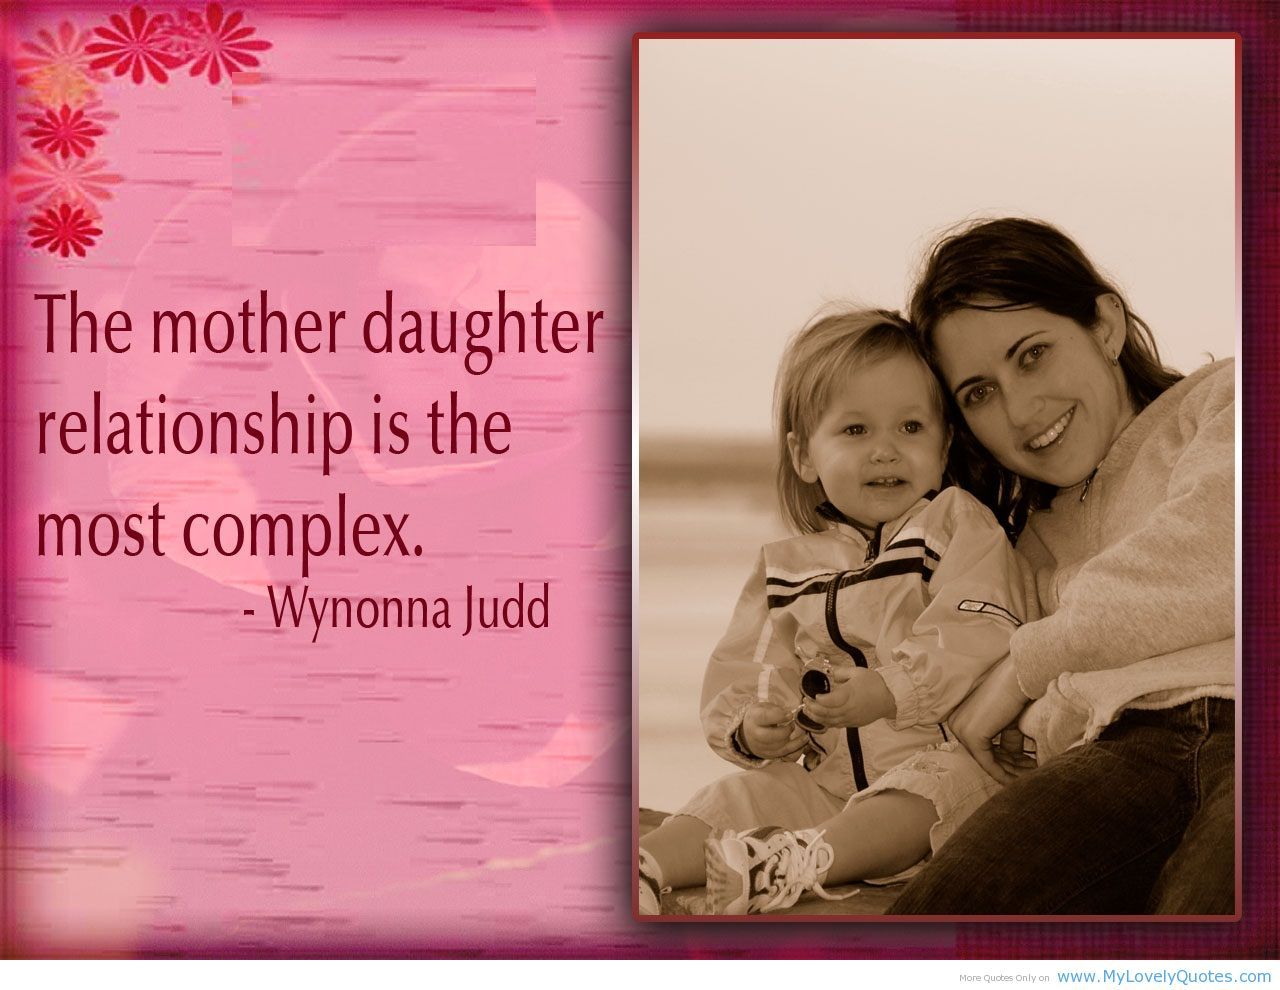 Mothers And Daughters Quotes Httpmylovelyquoteswpcontentuploads201304Mother